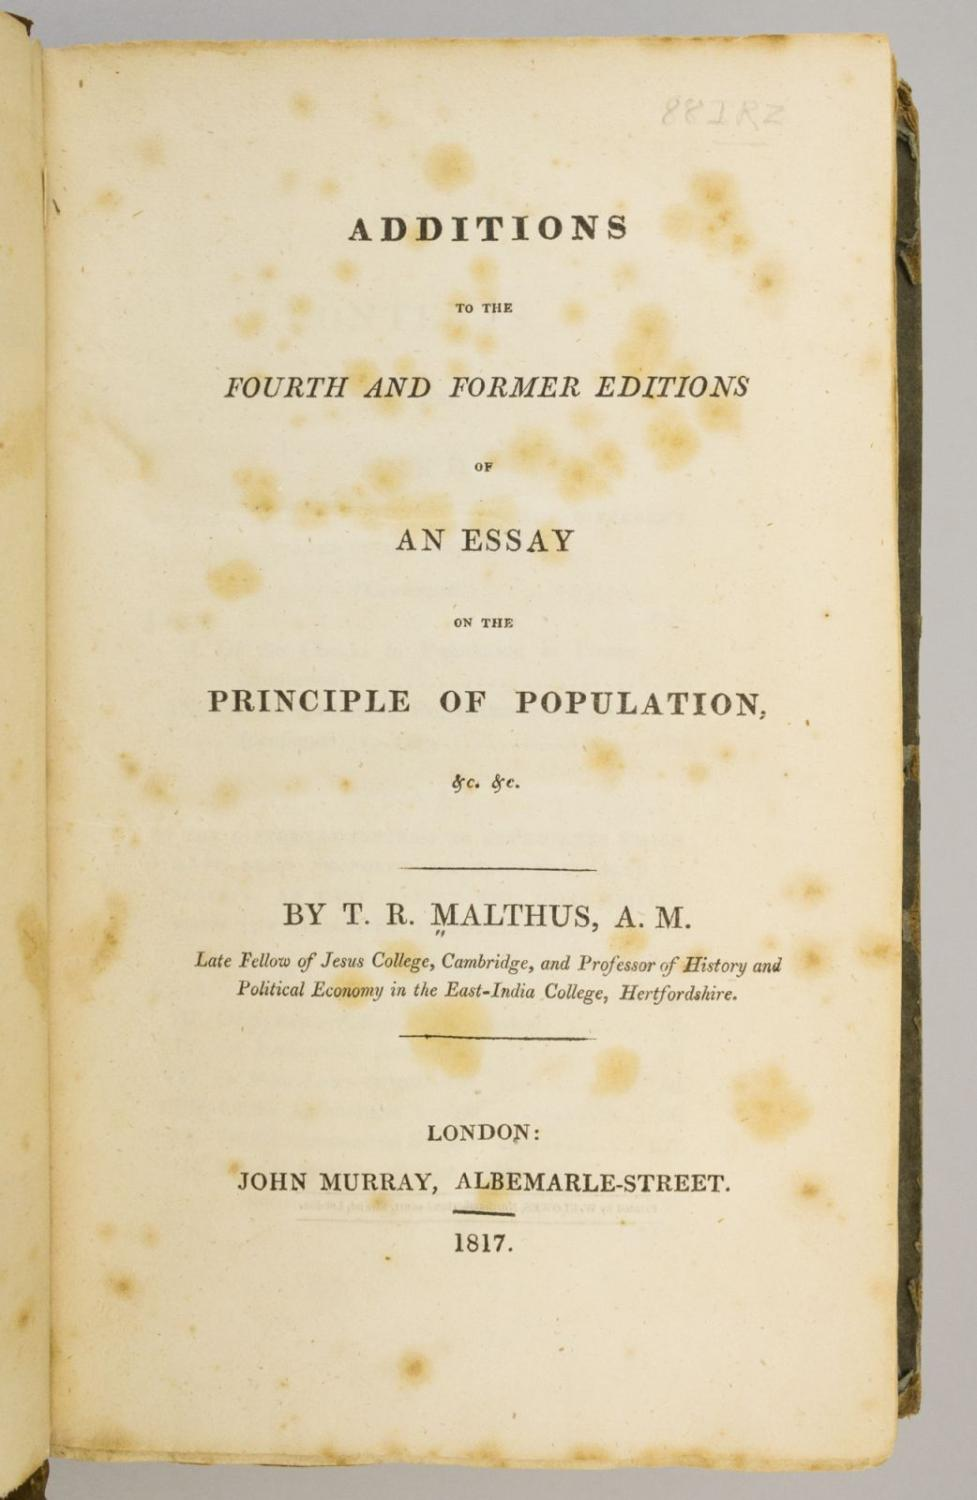 005 5337830061 2 Thomas Malthus An Essay On The Principle Of Population Marvelous Summary Analysis Argued In His (1798) That Full